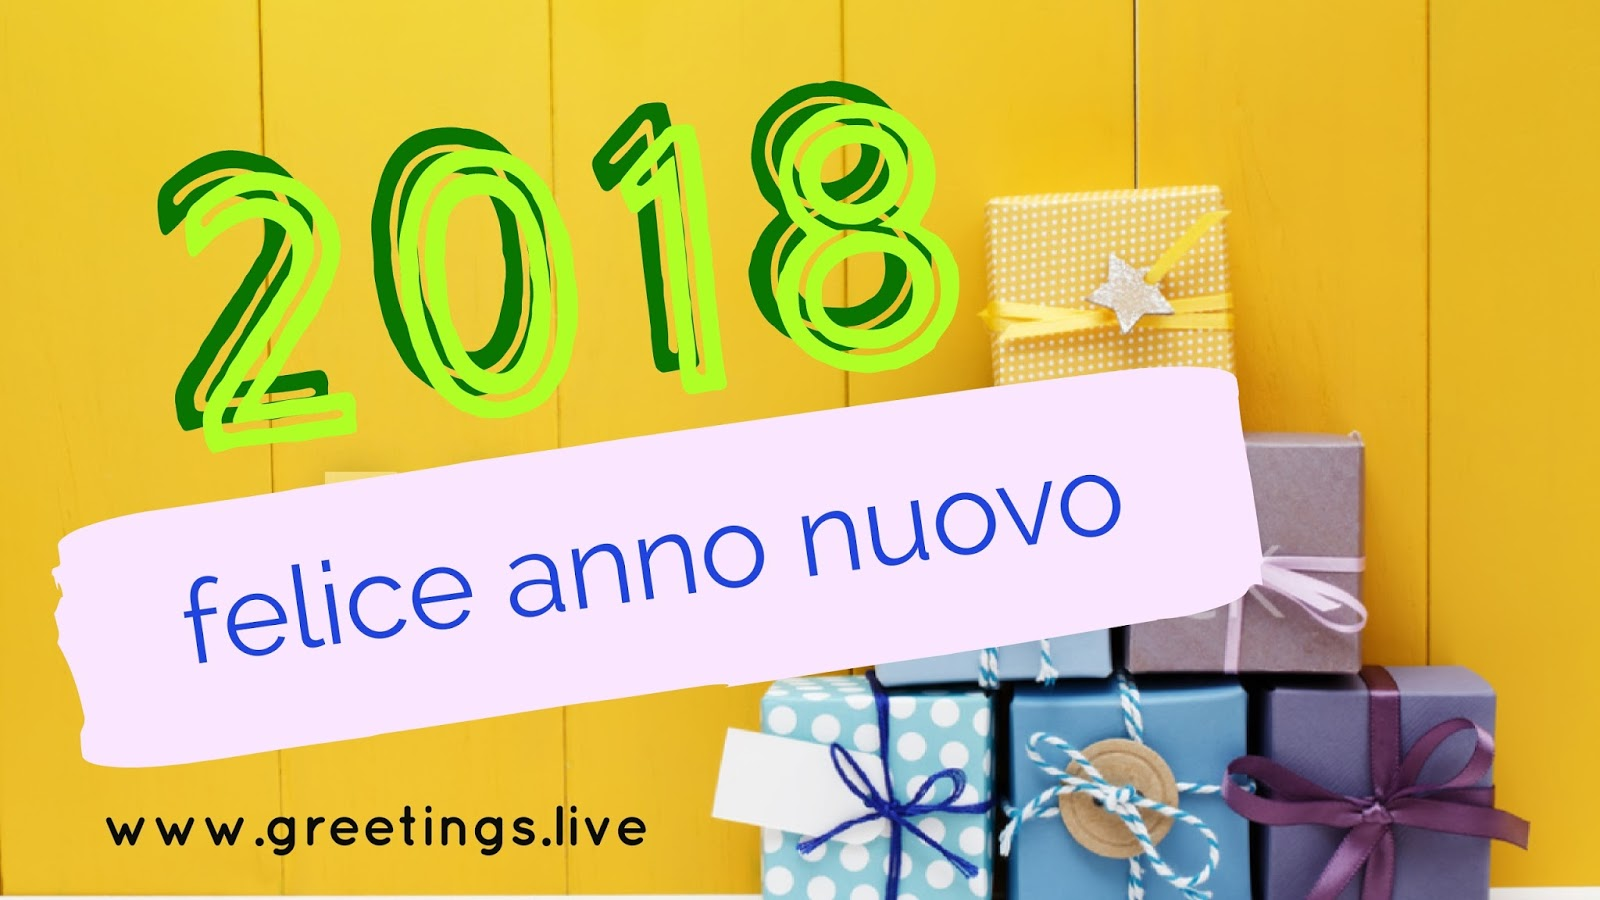 2018 new year wishes greetings italian happy new year greetings italian happy new year greetings felice anno nuovo m4hsunfo